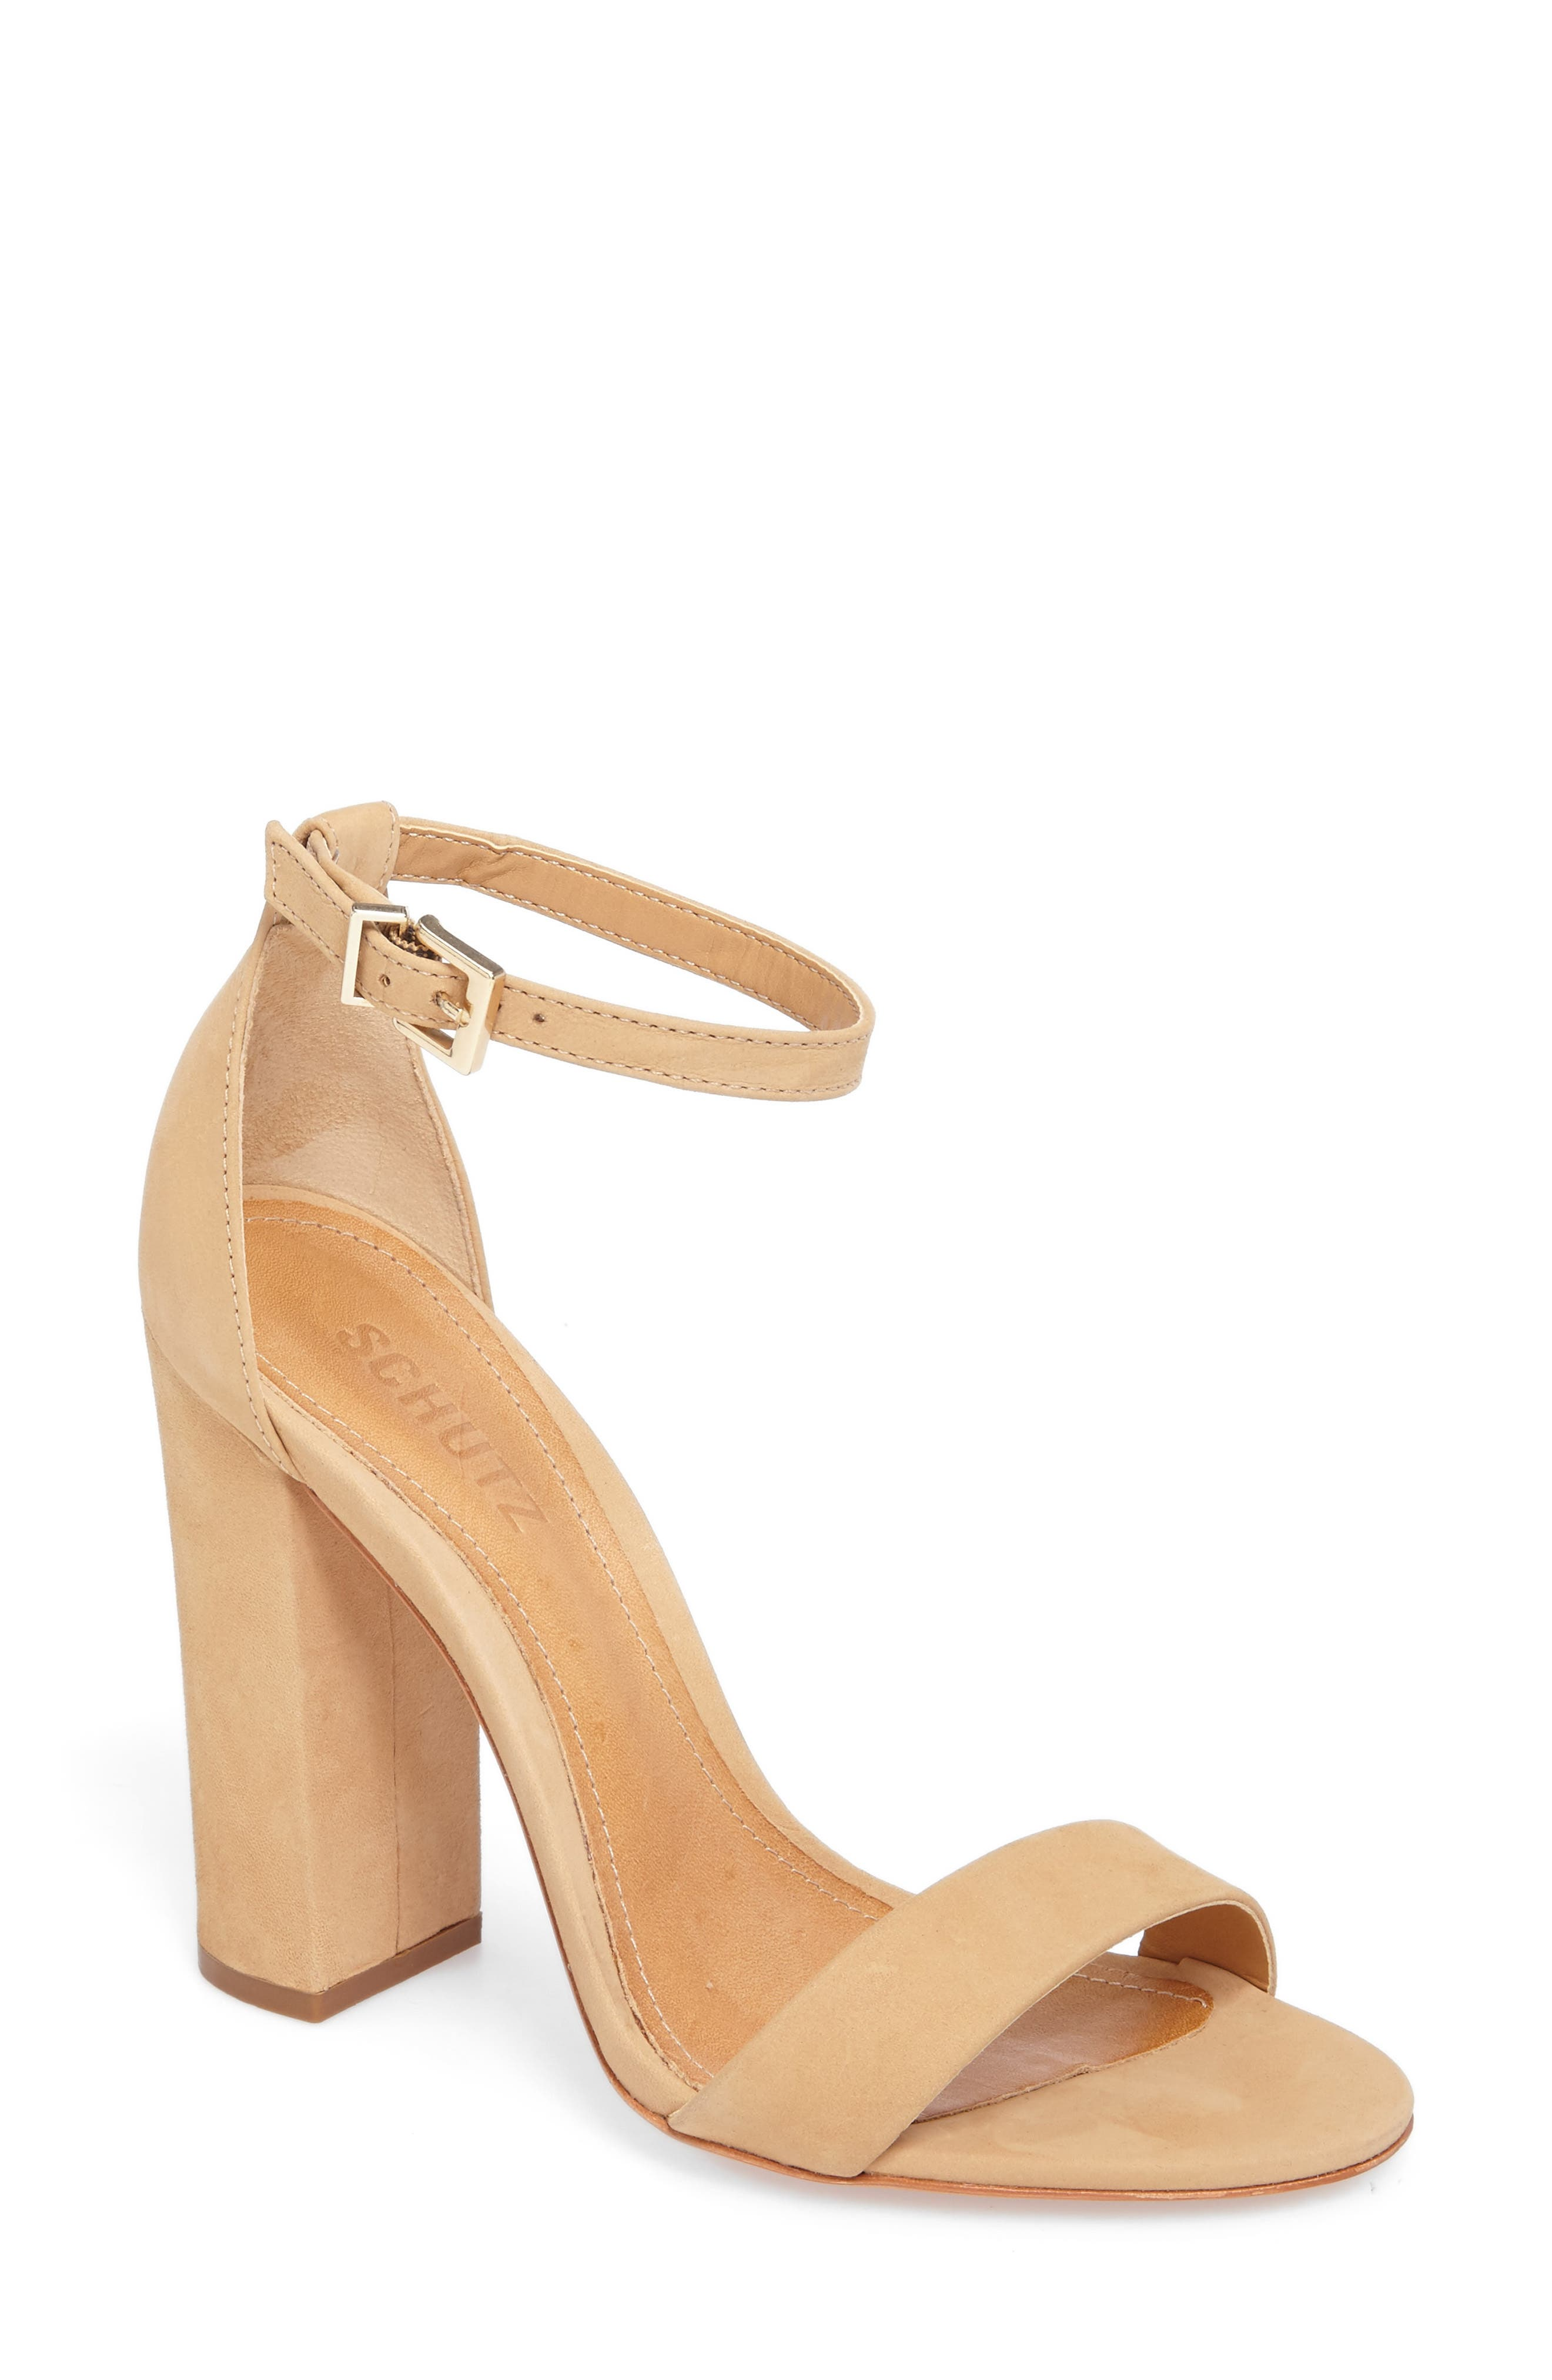 Alternate Image 1 Selected - Schutz Enida Strappy Sandal (Women)